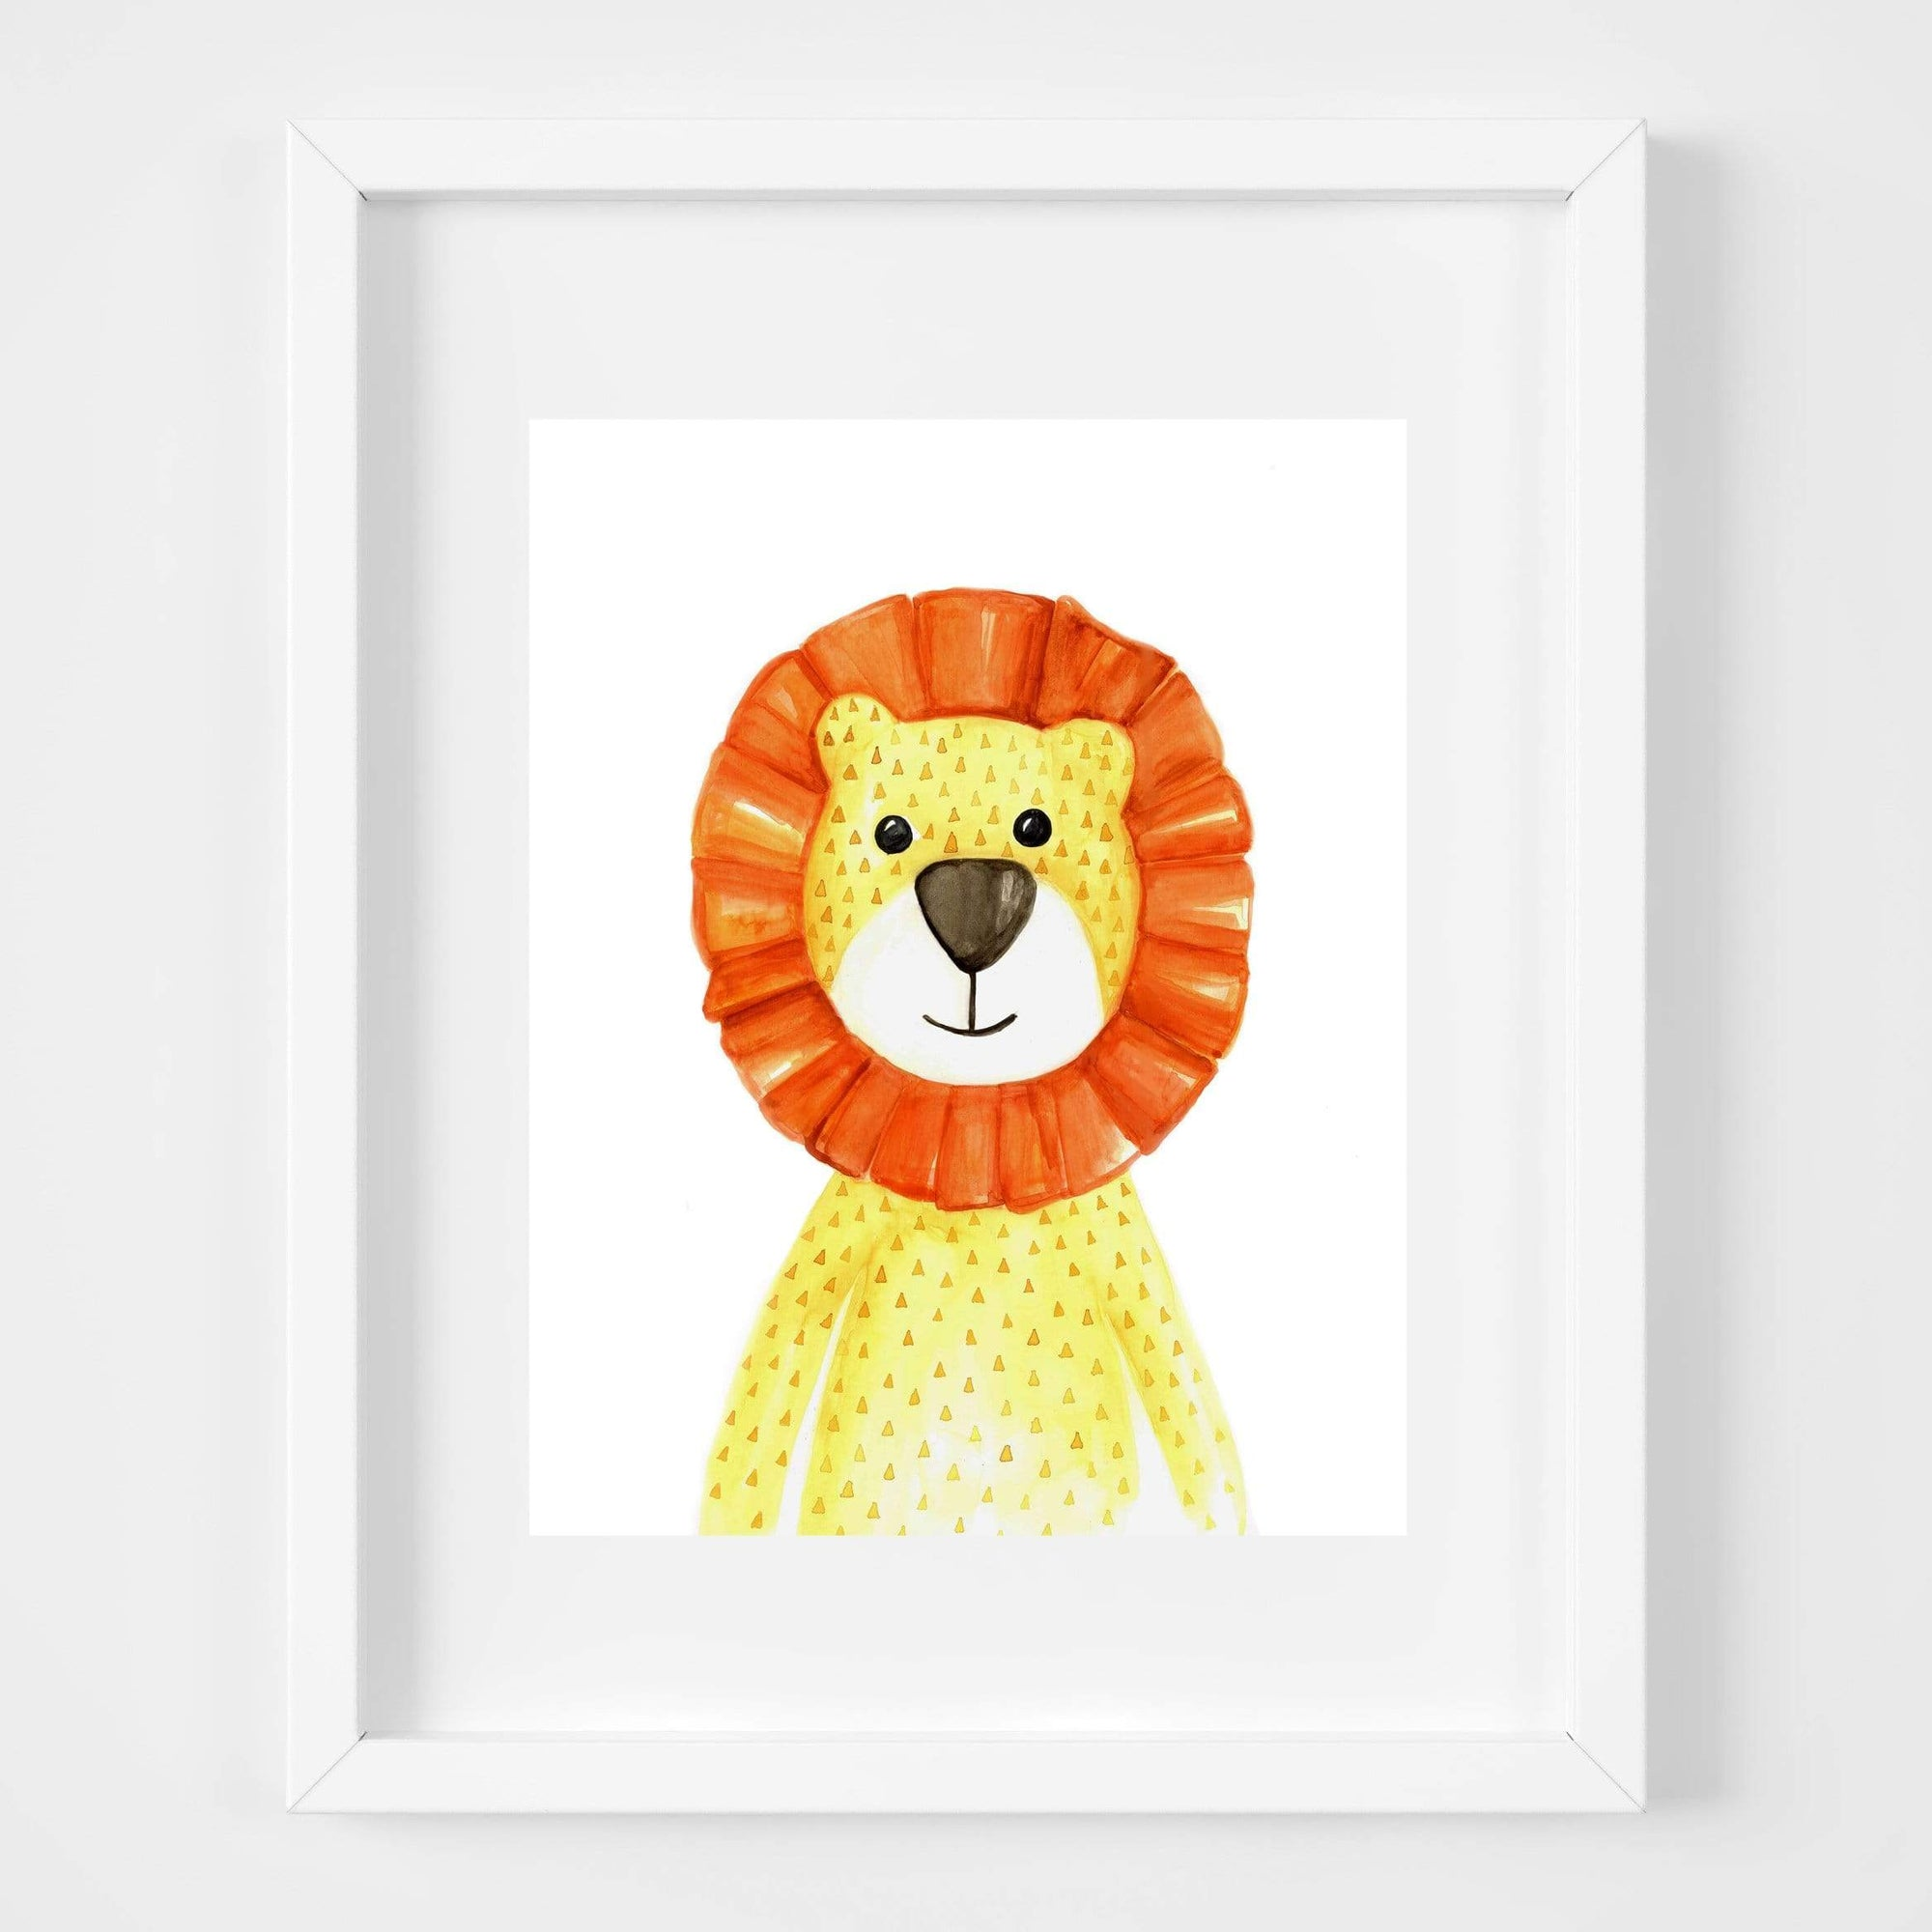 bebemoss.com Leo the lion print handmade by moms  gifts with purpose